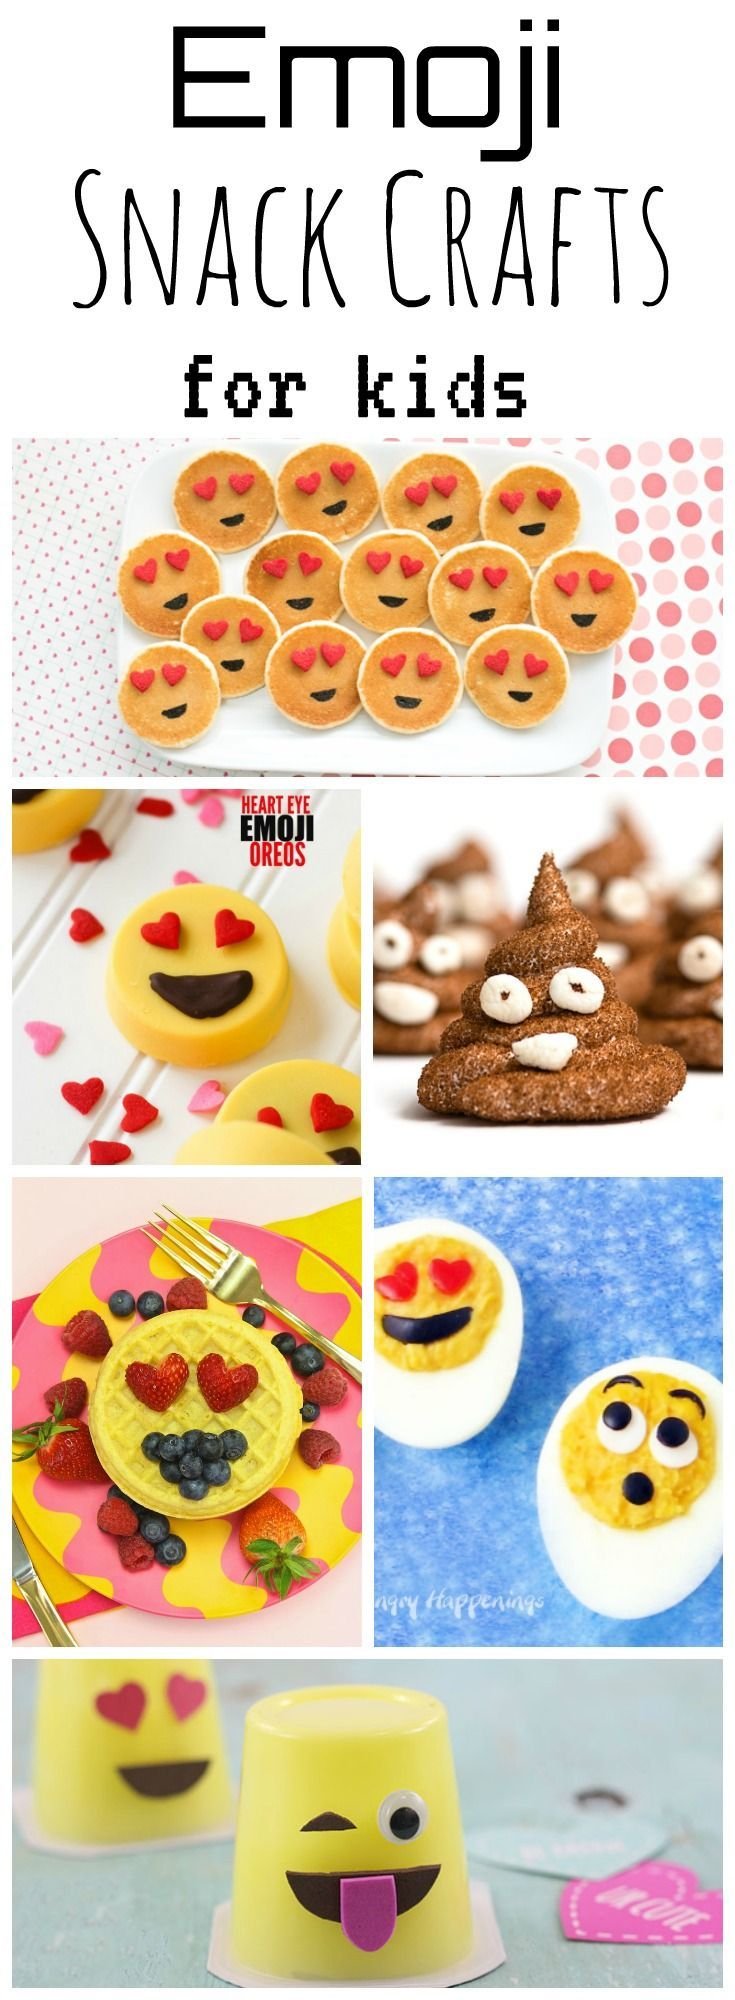 Emoji Snack Crafts for kids - a collection of the silliest and sweetest dishes featuring our favorite little icons - and just in time for The Emoji Movie coming to theaters this summer! Perfect for an emoji party!